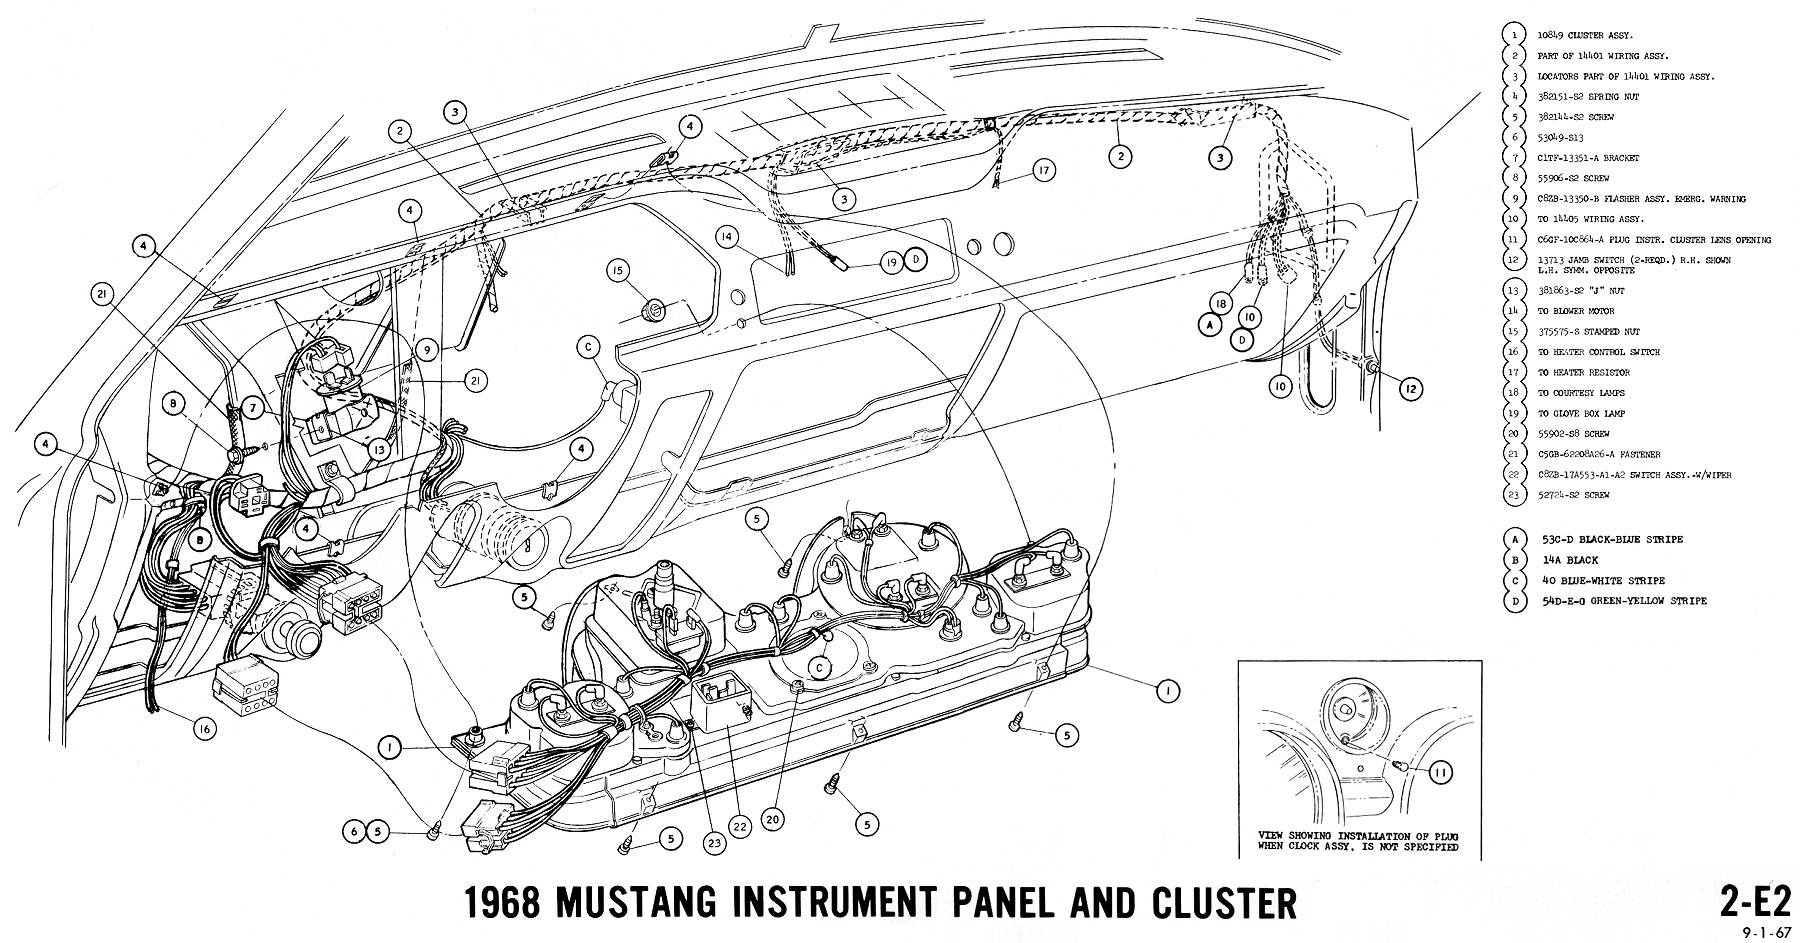 wiring diagram for 1985 ford mustang pdf with 1968 Mustang Wiring Diagrams on P 0900c15280045126 also Index11 in addition Grounding Wire Location Help Please 10069 moreover 1967 Mustang Wiring And Vacuum Diagrams likewise 1983 1988 Ford Bronco Ii Start Ignition.